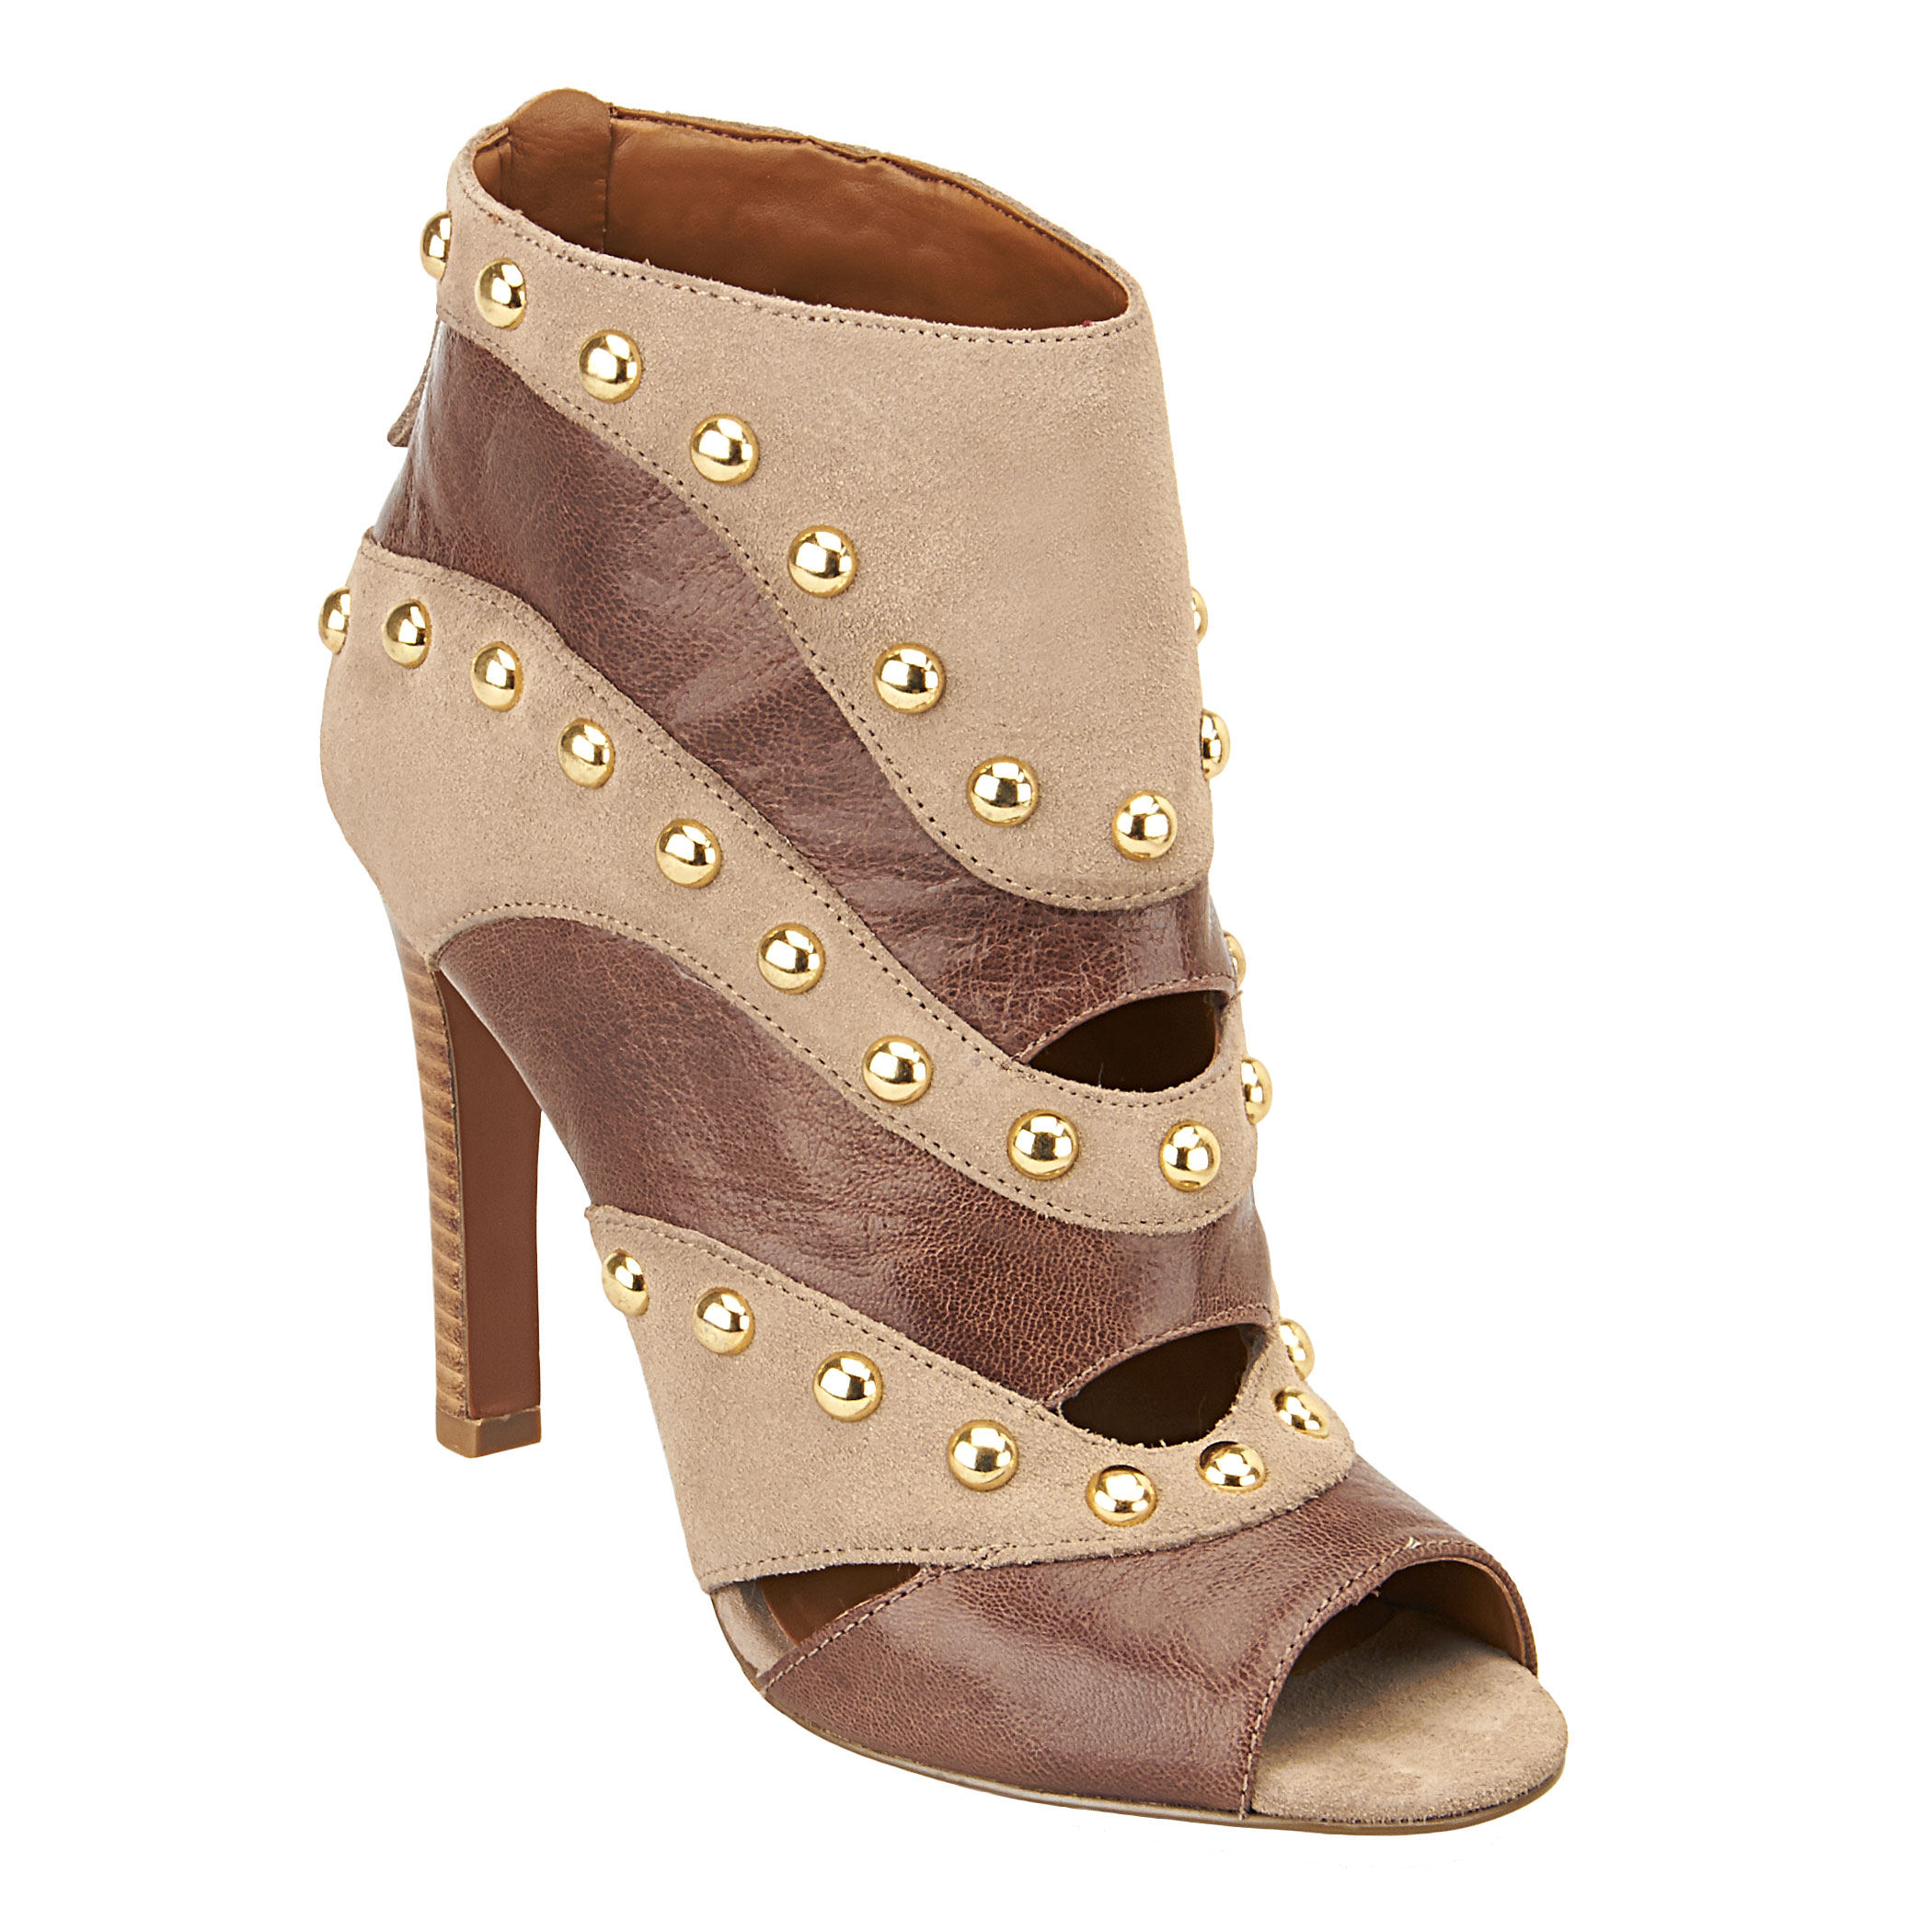 Nine West Ezzy Peep Toe Studded Booties In Brown Taupe